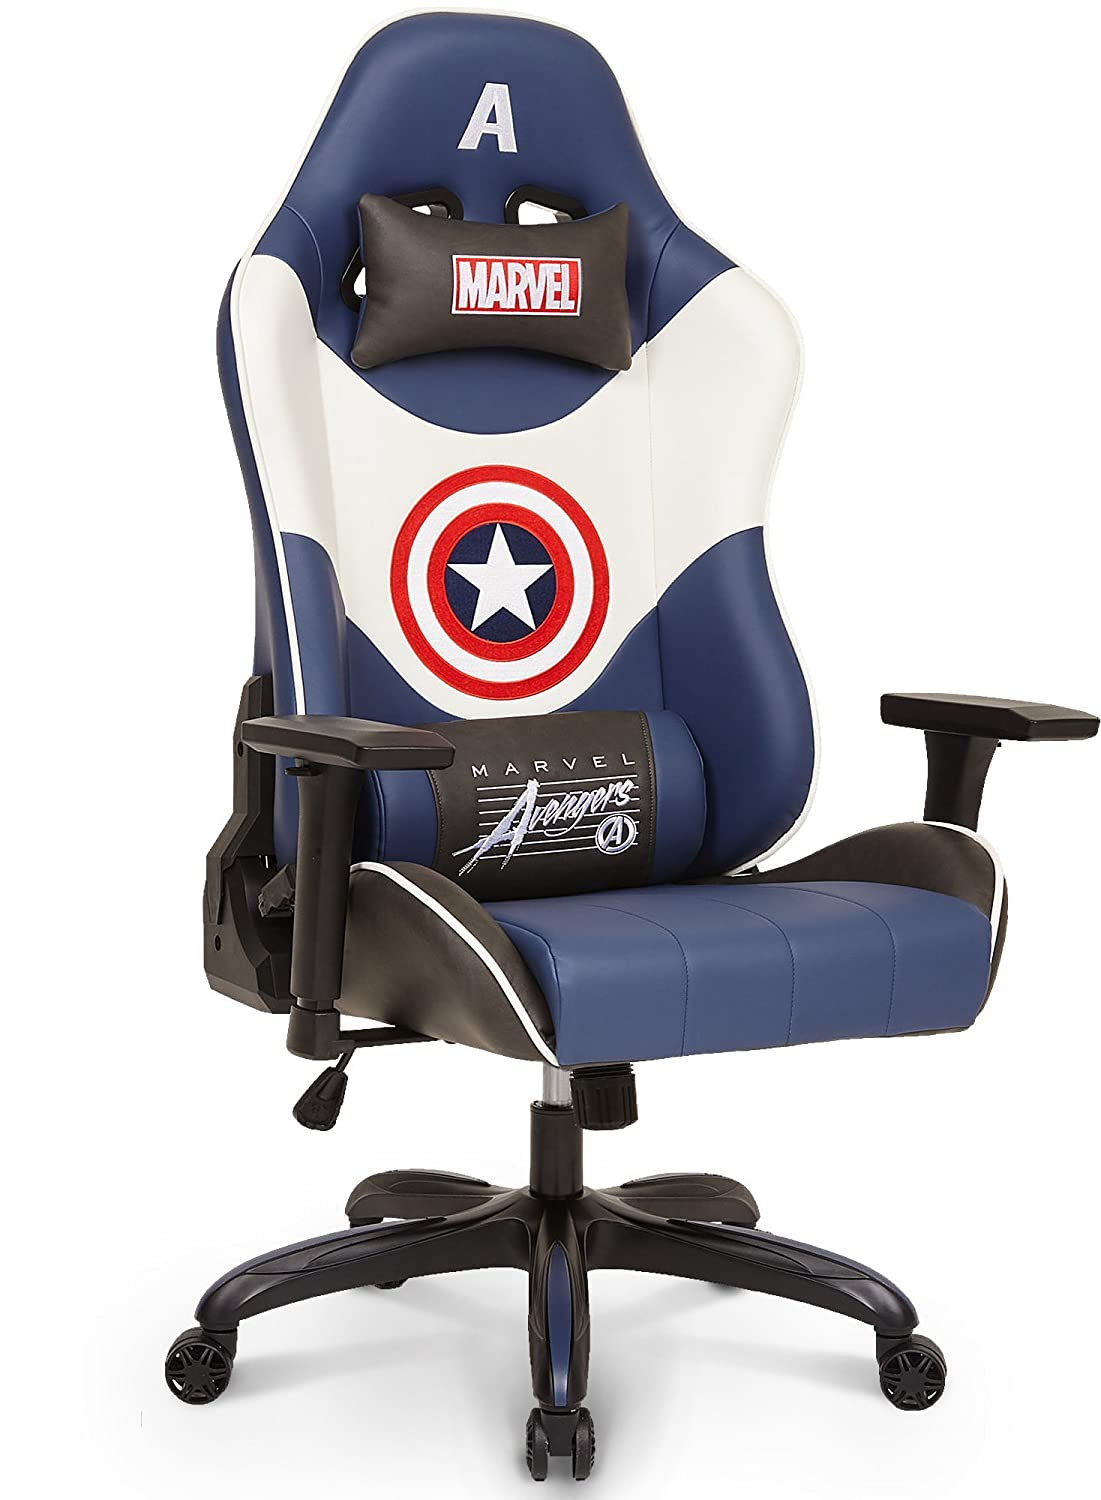 Marvel Avengers Captain America Chair, Avengers, Infinity War, Marvel Universe, MCU, Iron Man, Thor, Thanos, cosplay gear, action figures, Marvel items, Hulk, Spider Man, Captain America, Black Widow, Doctor Strange,